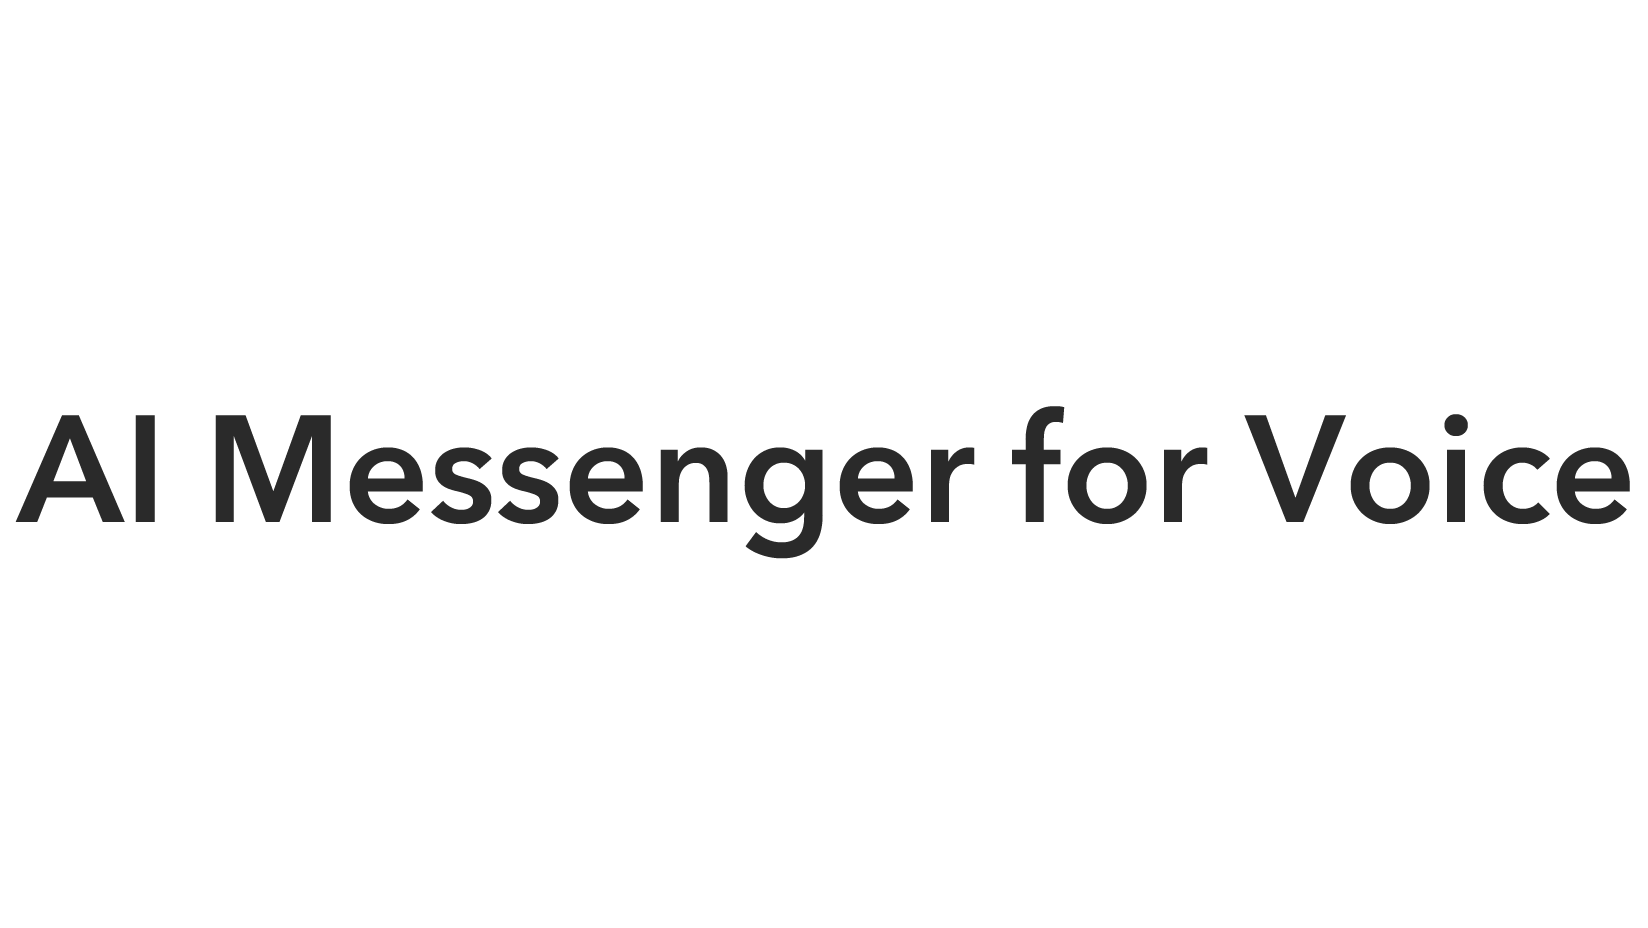 AI Messenger for Voice